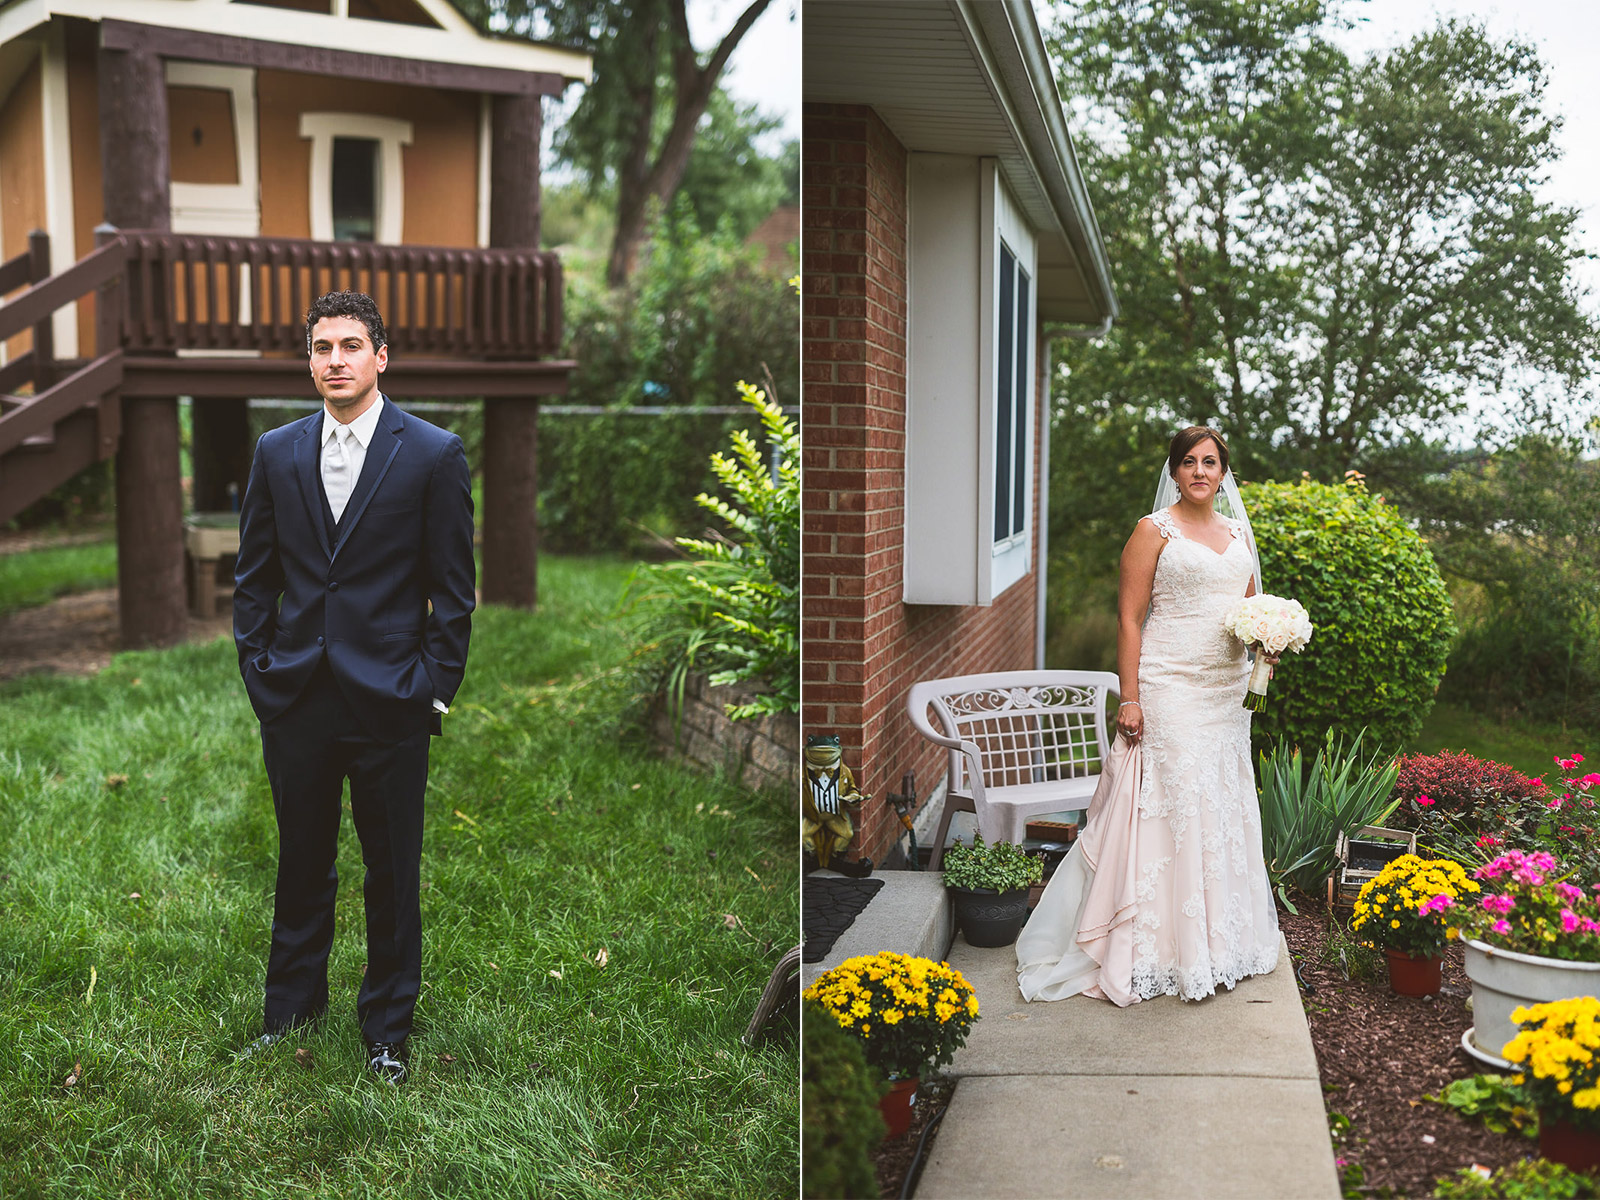 20-bride-and-groom-at-their-homes